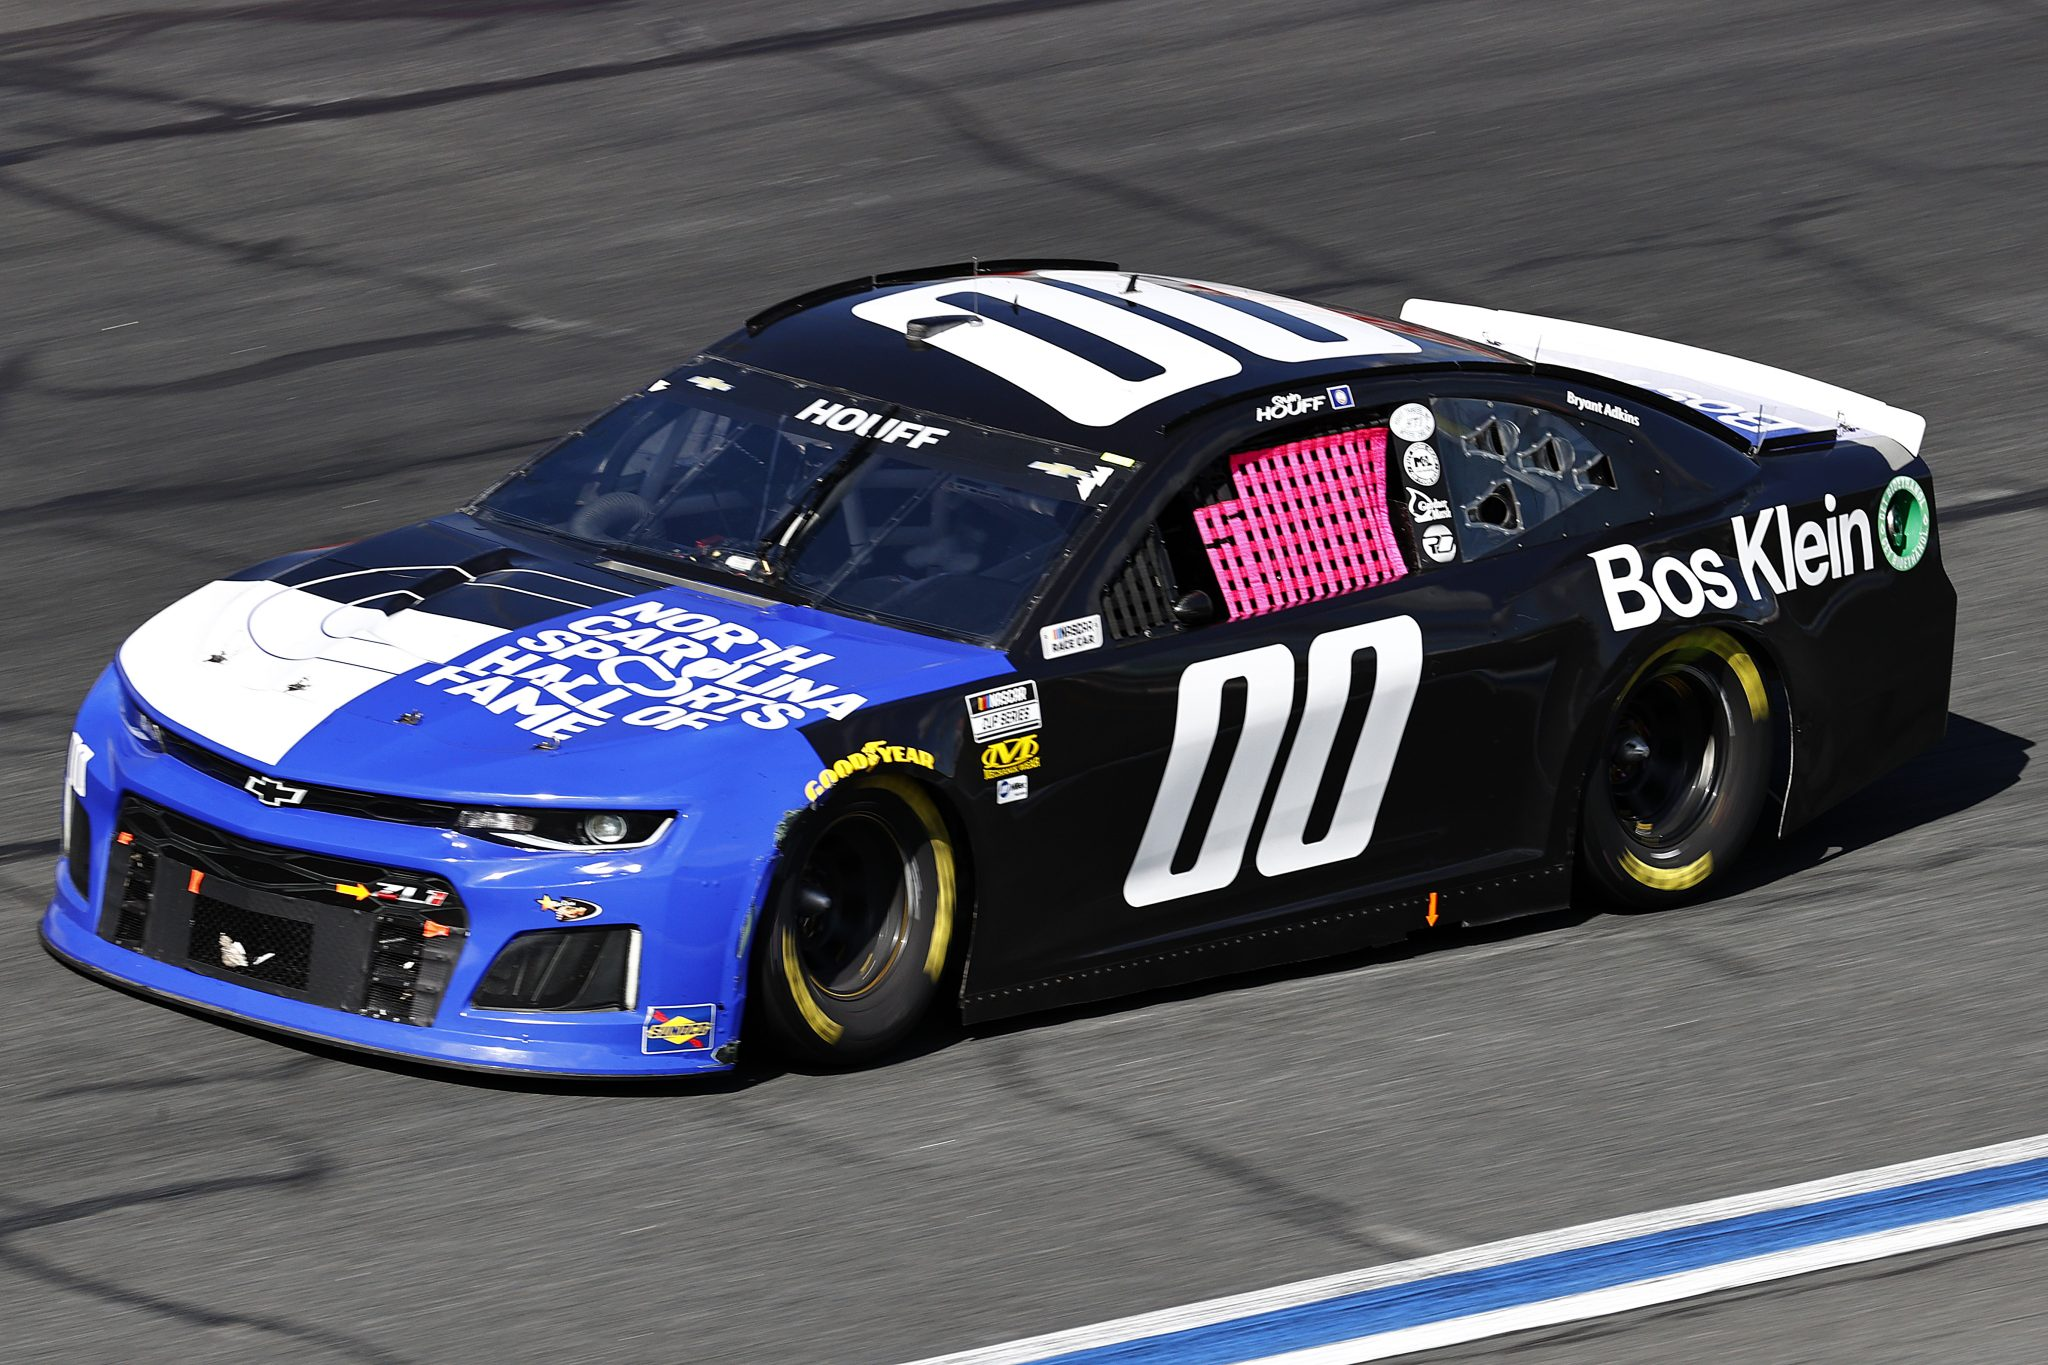 CONCORD, NORTH CAROLINA - OCTOBER 10: Quin Houff, driver of the #00 NC Sports HOF/Bos Klein Chevrolet, drives during the NASCAR Cup Series Bank of America ROVAL 400 at Charlotte Motor Speedway on October 10, 2021 in Concord, North Carolina. (Photo by Jared C. Tilton/Getty Images) | Getty Images